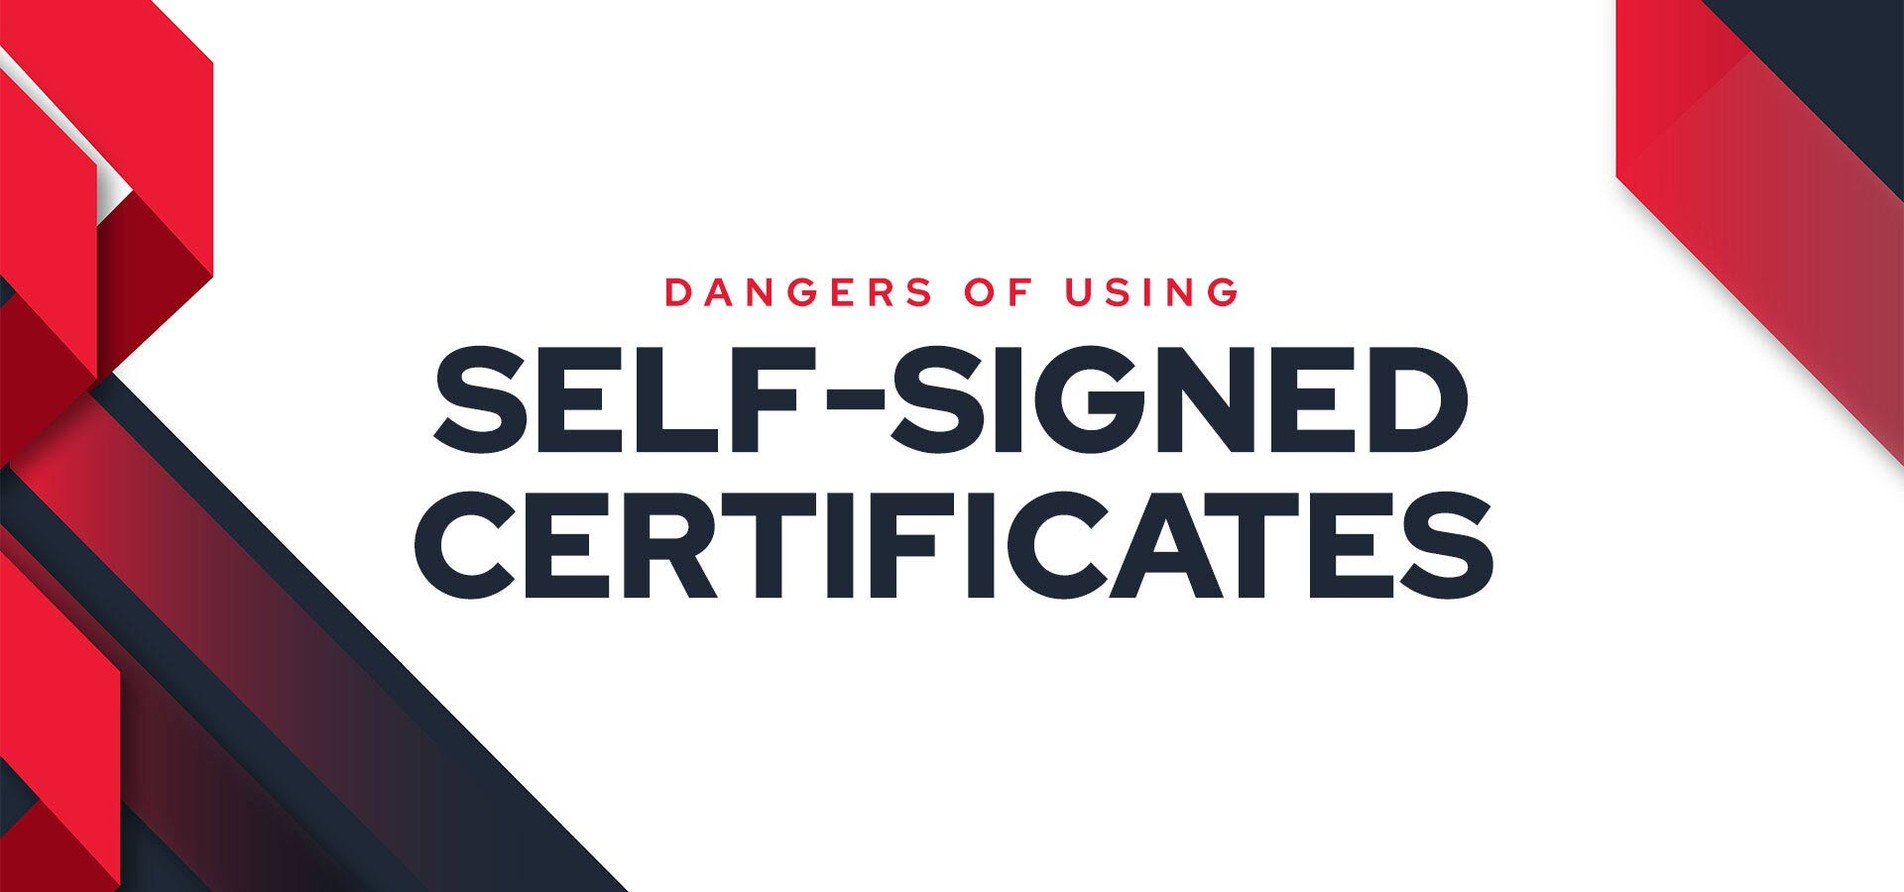 Dangers of Using Self-Signed Certificates.